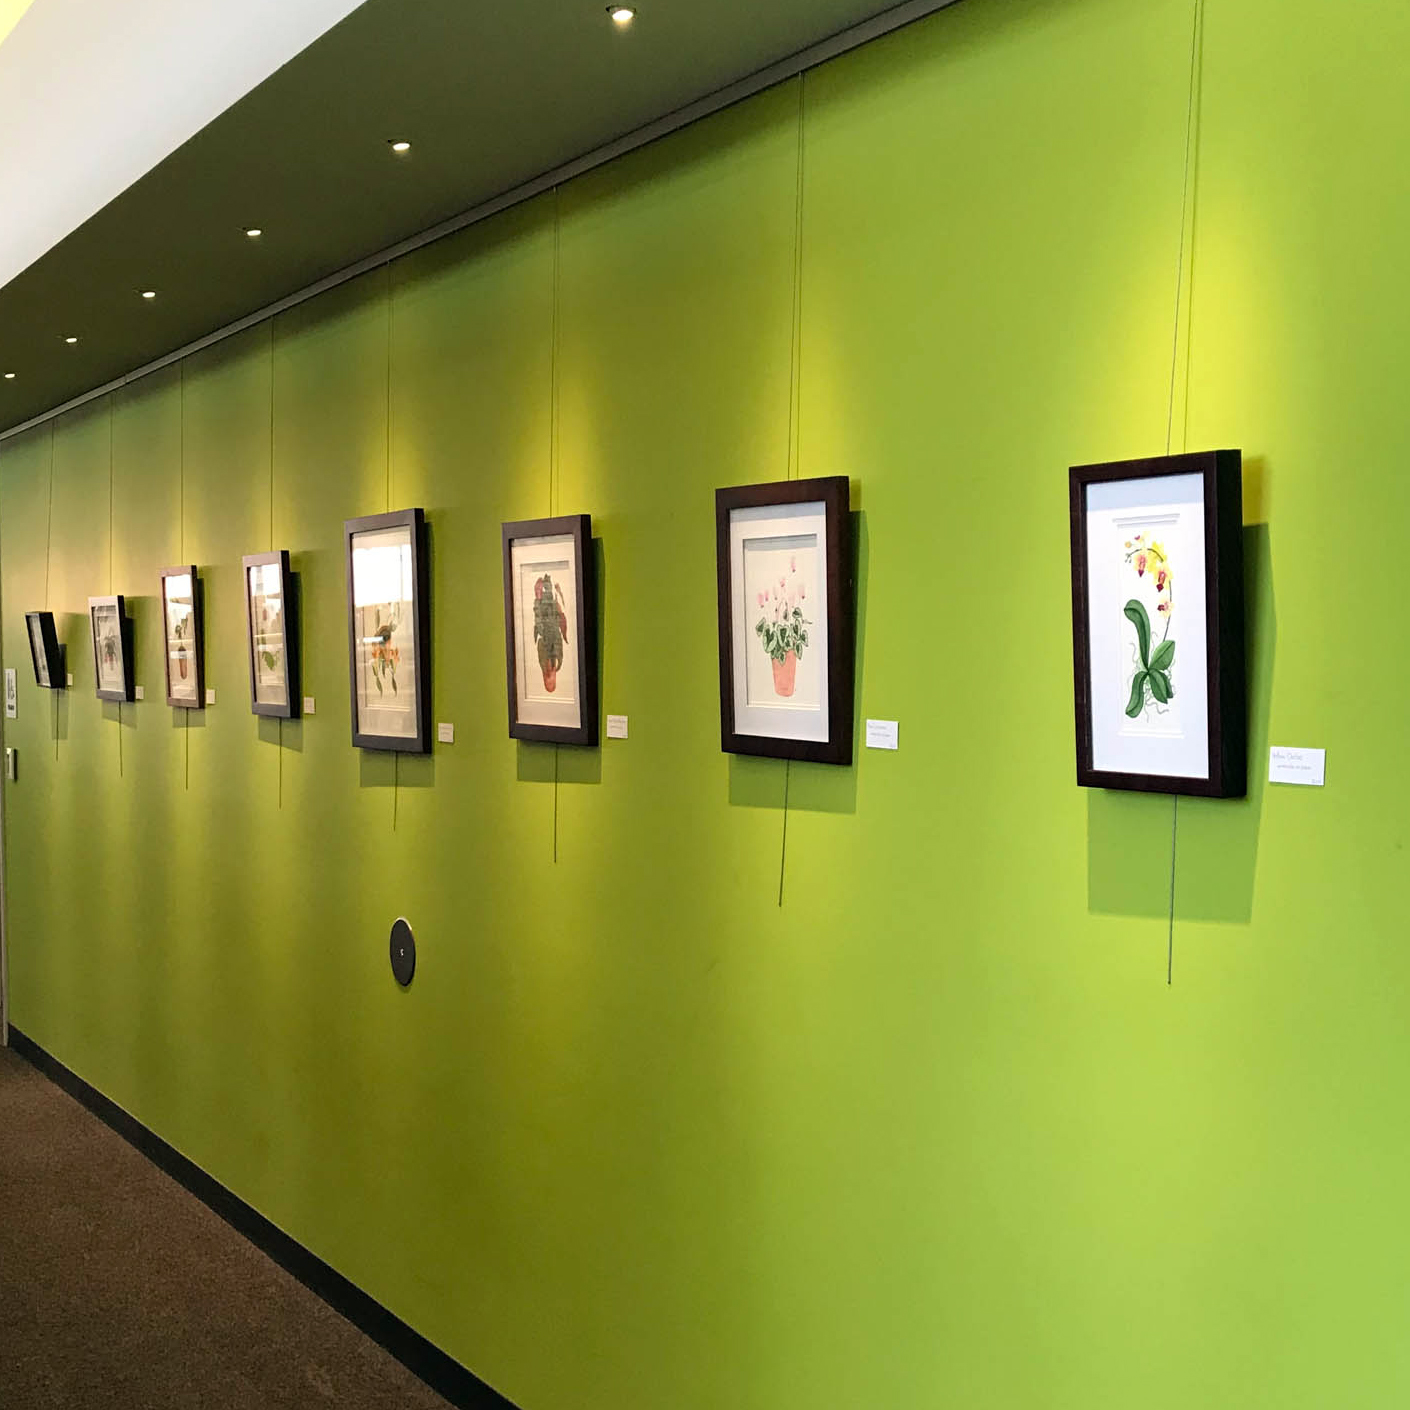 Paintings by Anne Butera on Exhibit at the McIntosh Memorial Library in Viroqua, Wisconsin in February of 2018